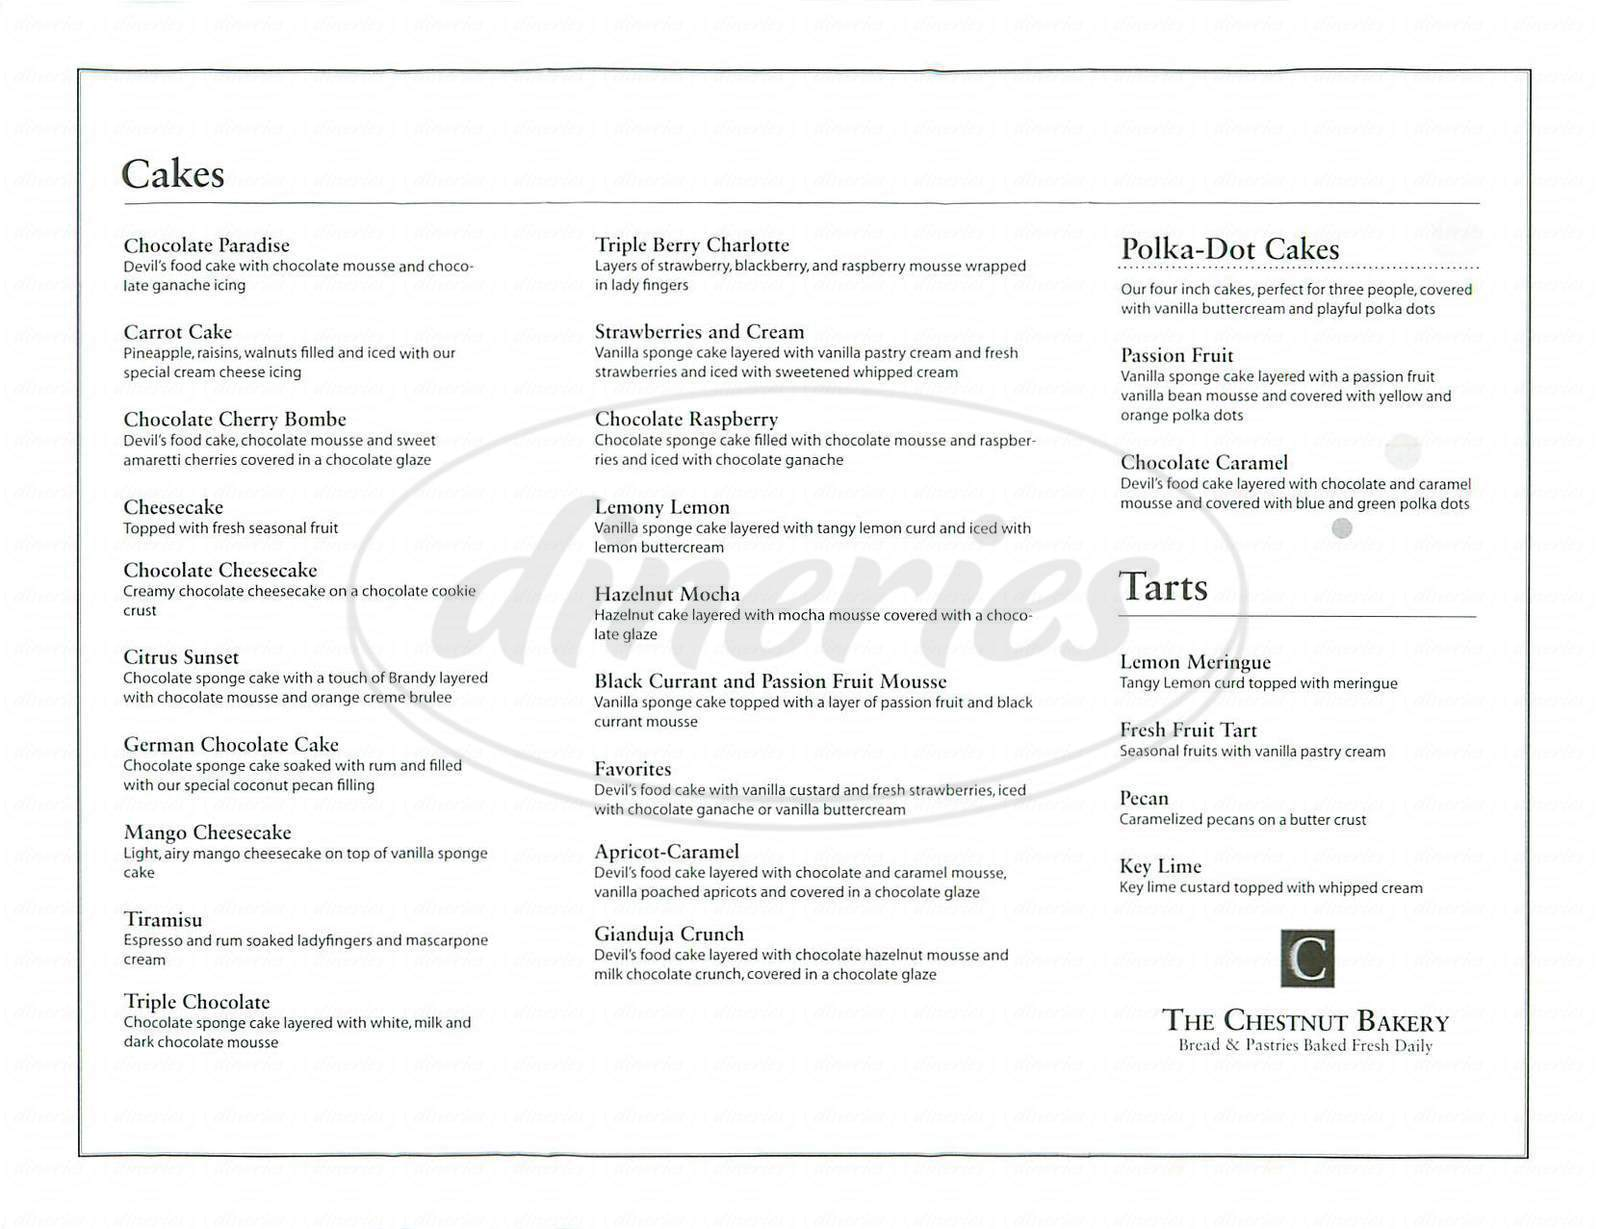 menu for Chestnut Bakery